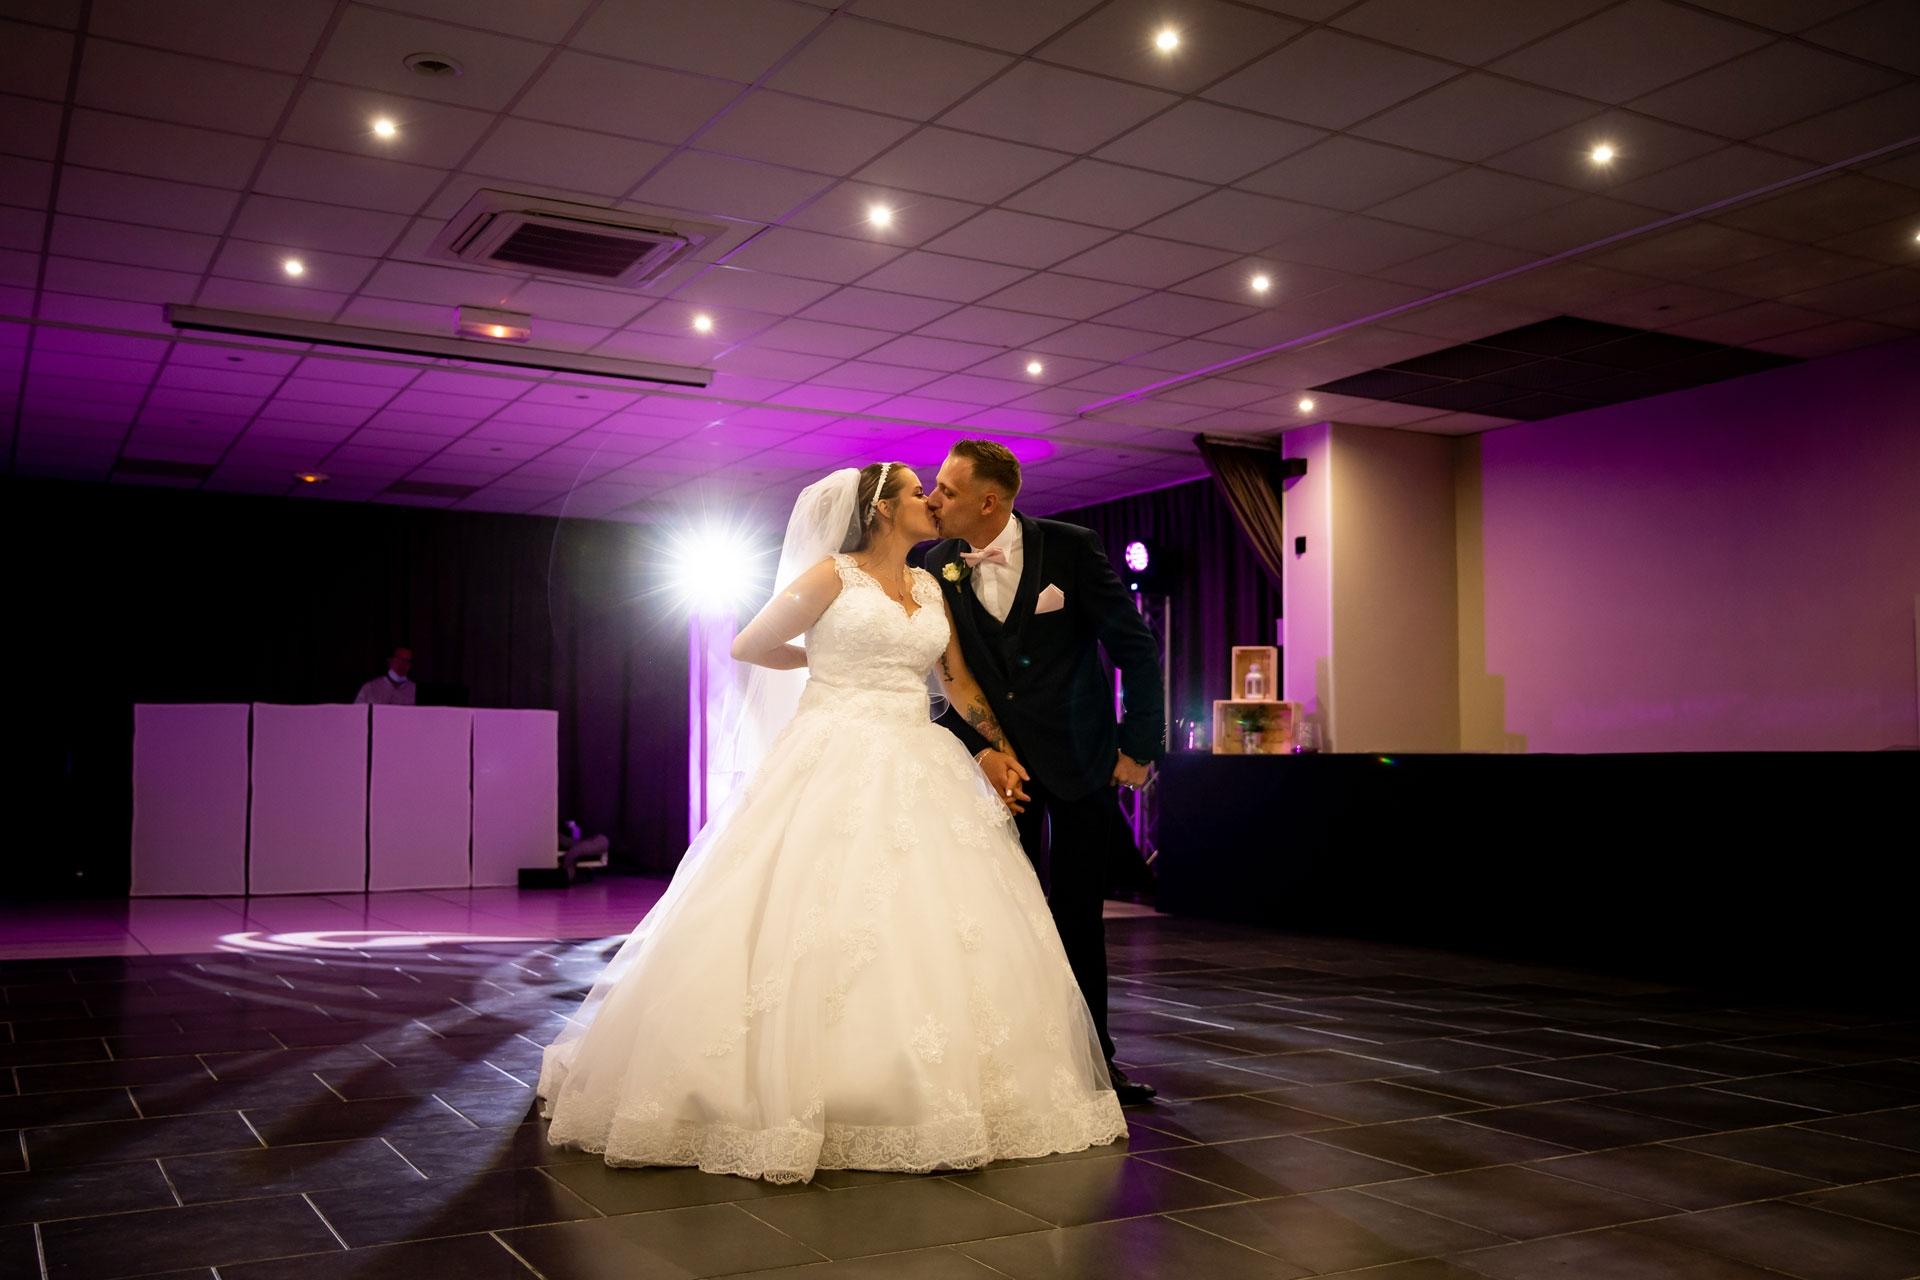 20200912-mariage-ophelie-alexandre-075